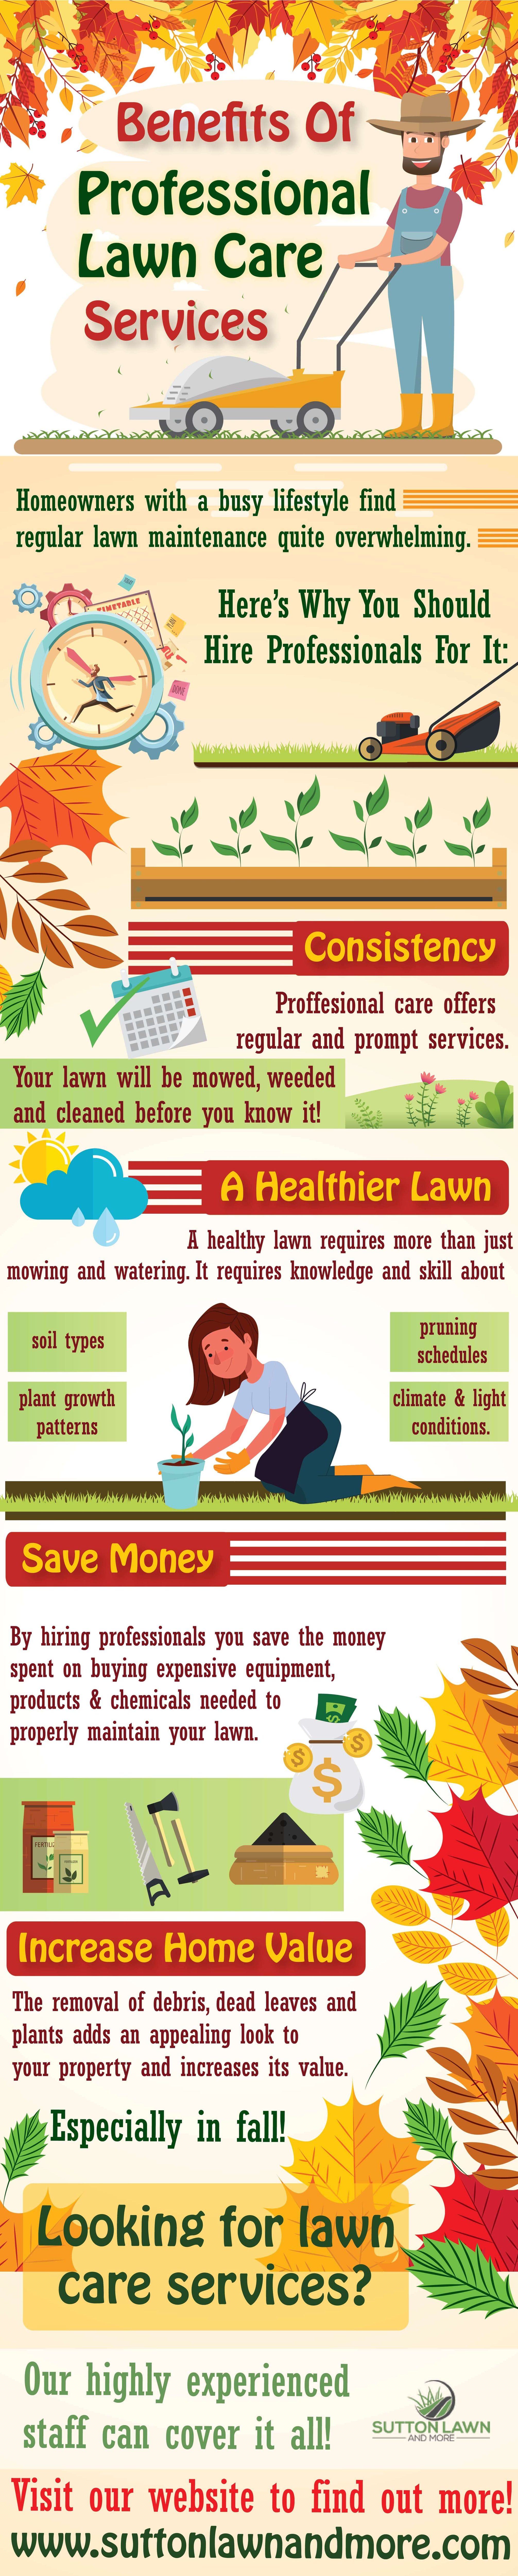 Benefits-of-professional-lawn-care